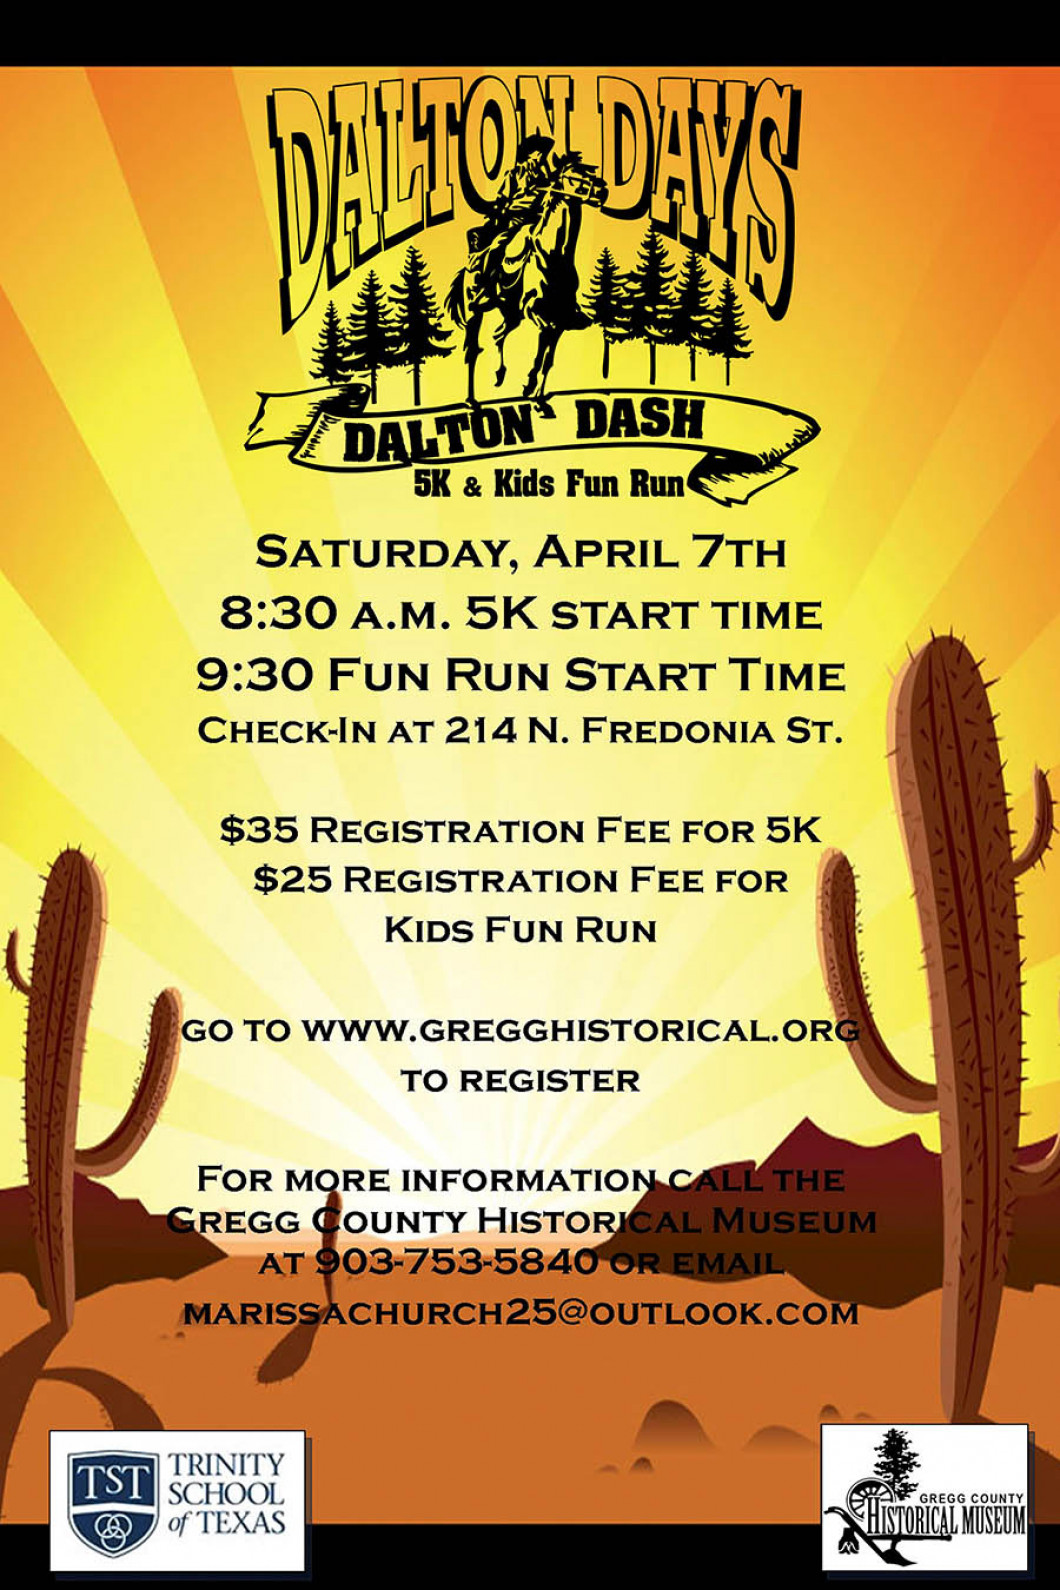 DALTON DASH 5K & KIDS FUN RUN